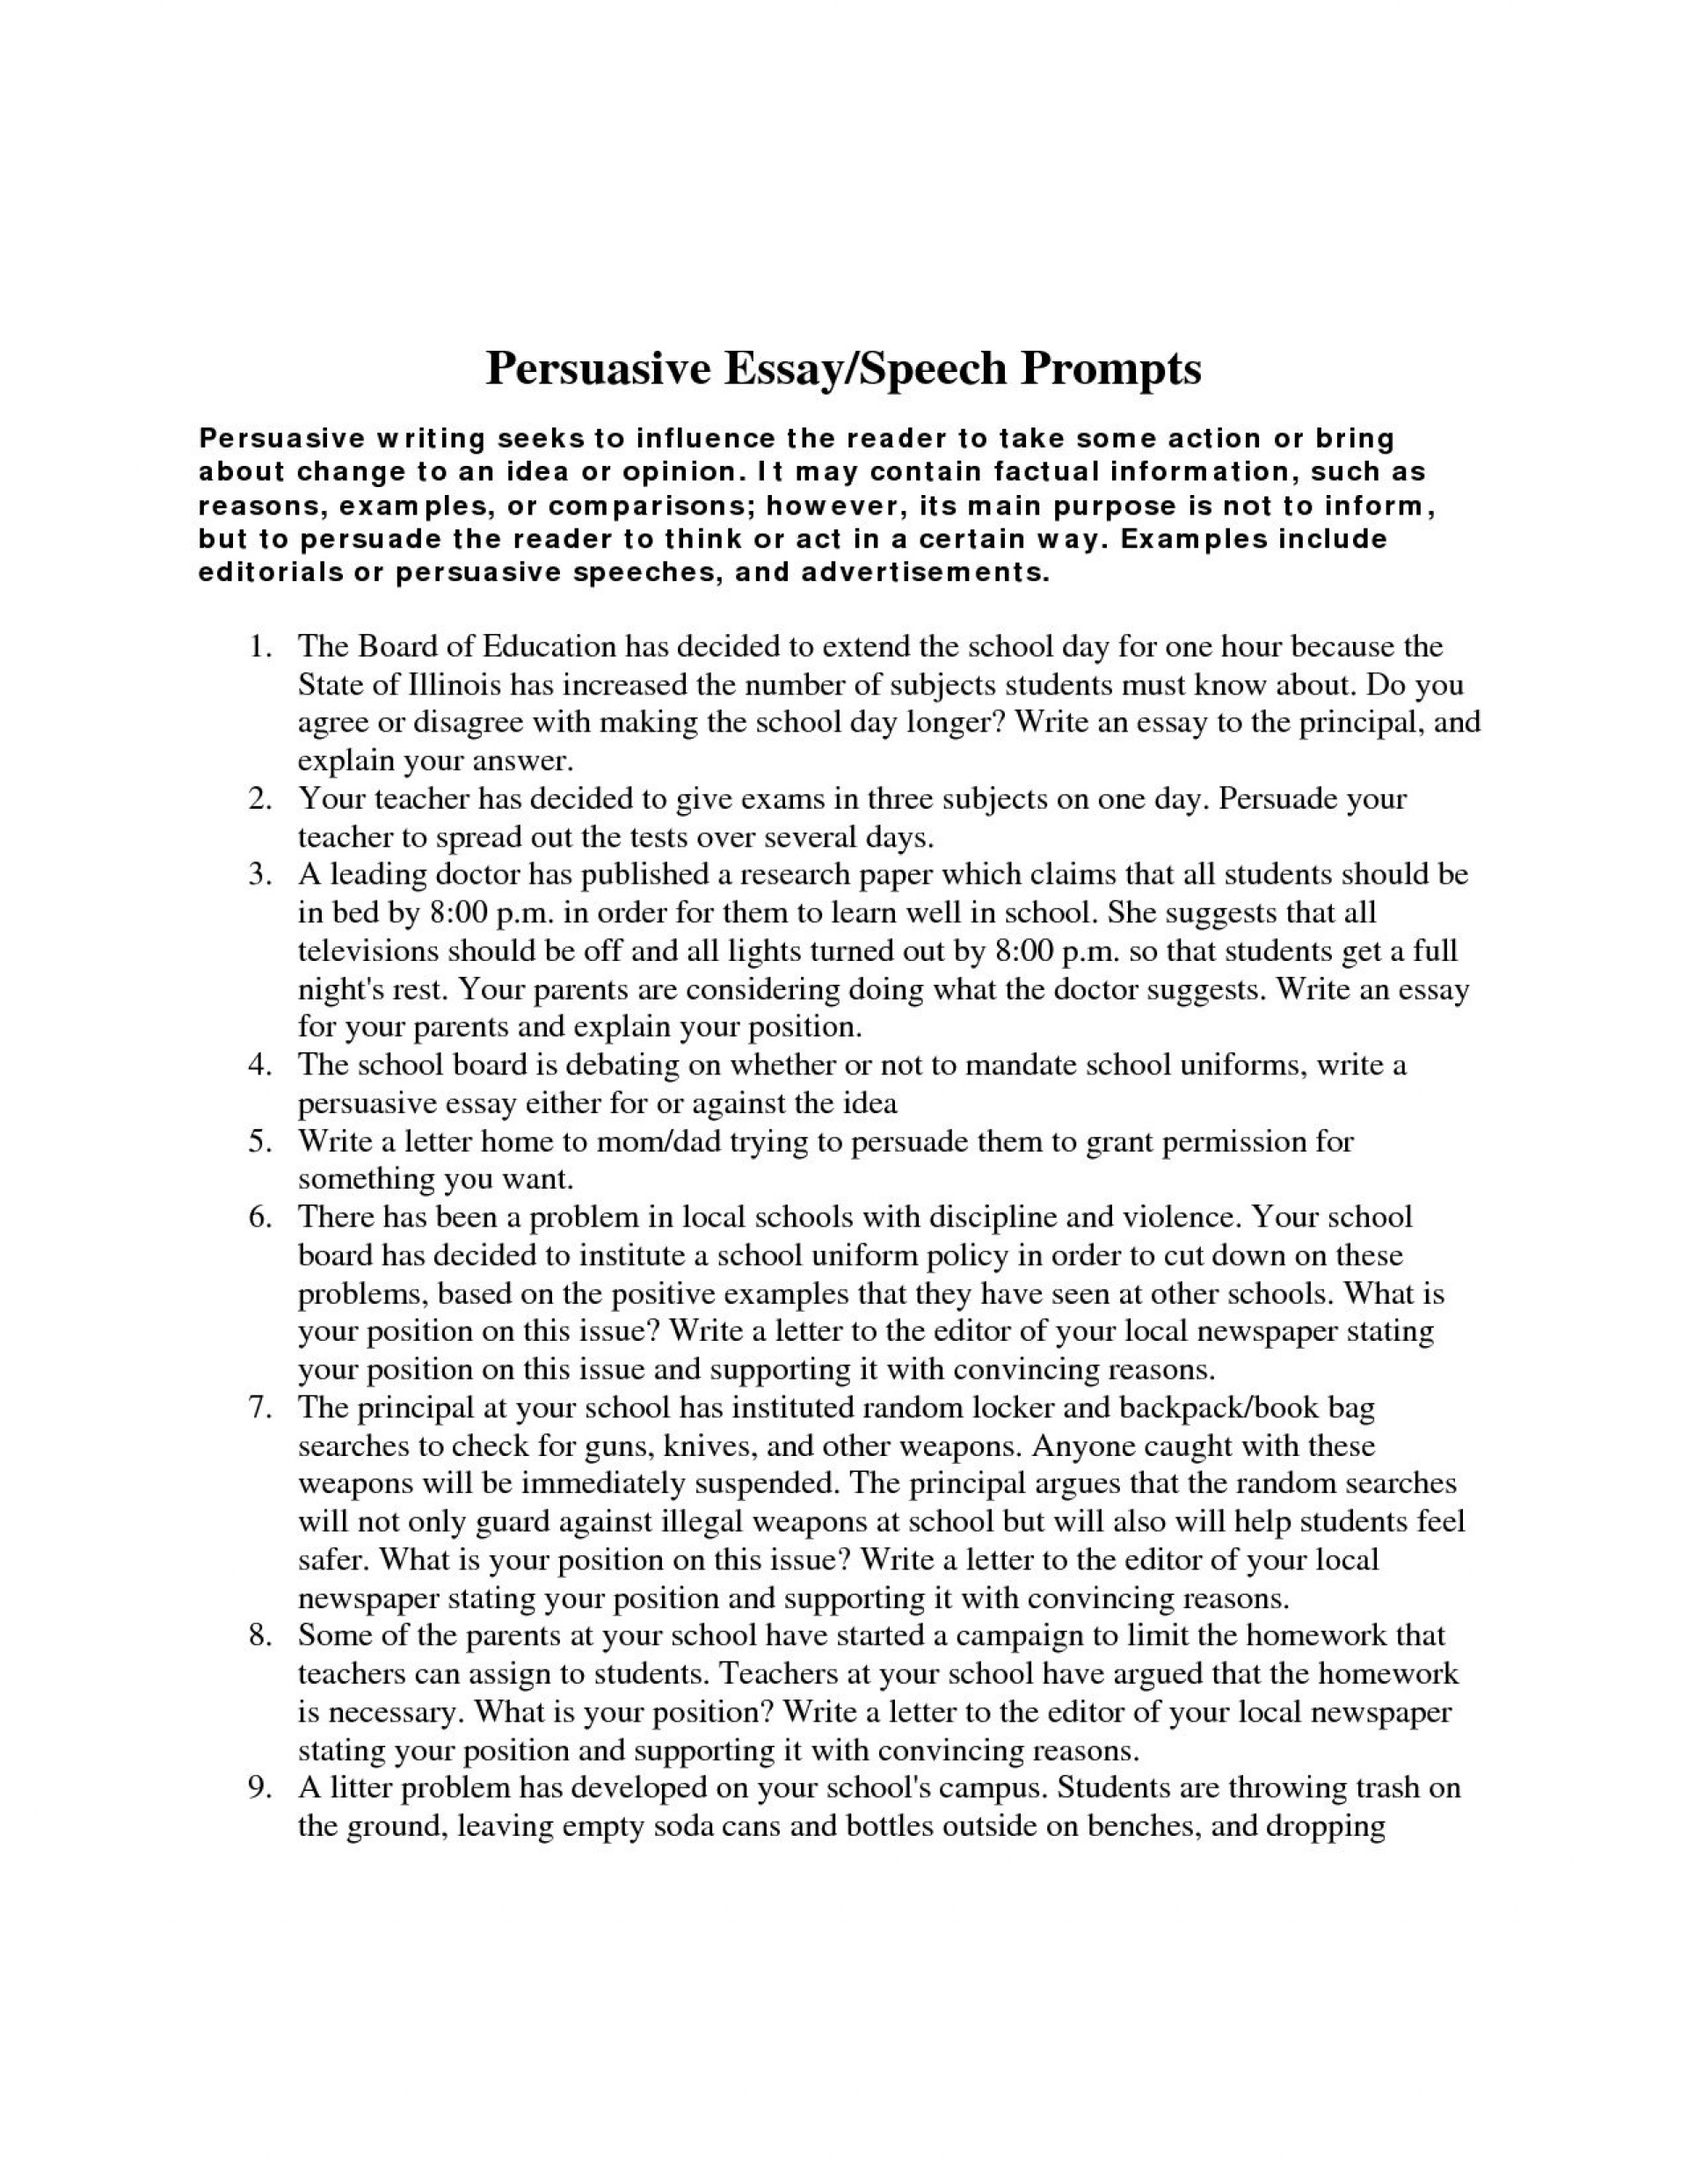 007 What Is The Purpose Of Persuasive Essay Example Beautiful A Structure Format Brainly 1920